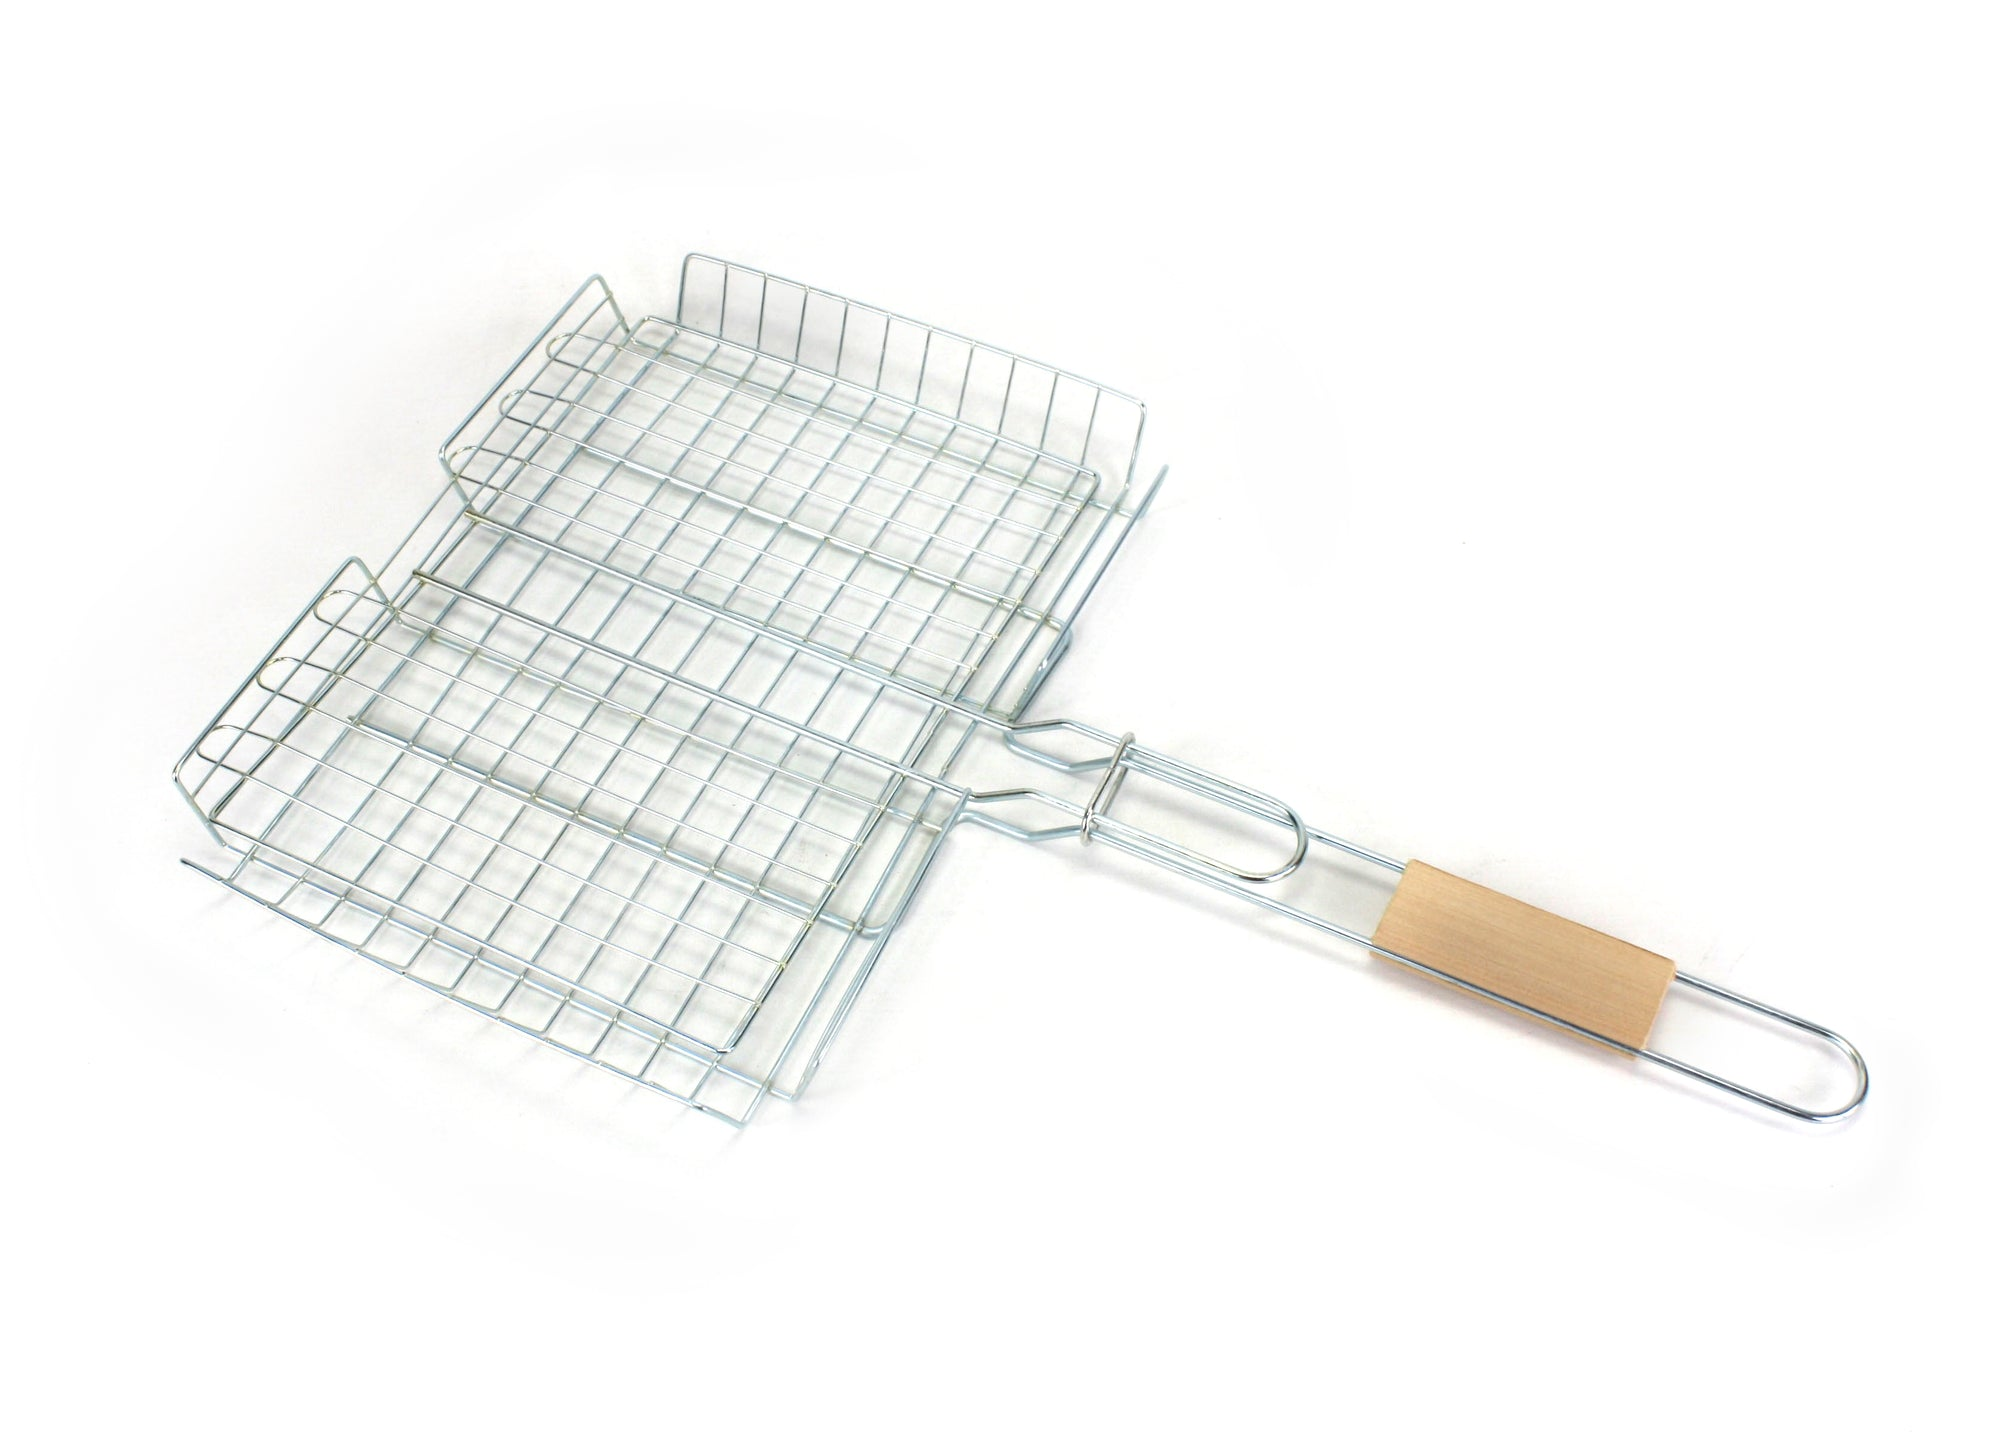 Barbecue Grill basket cooking utensil, 3.5cm capacity, 48cm x 30cm. - farangshop-co